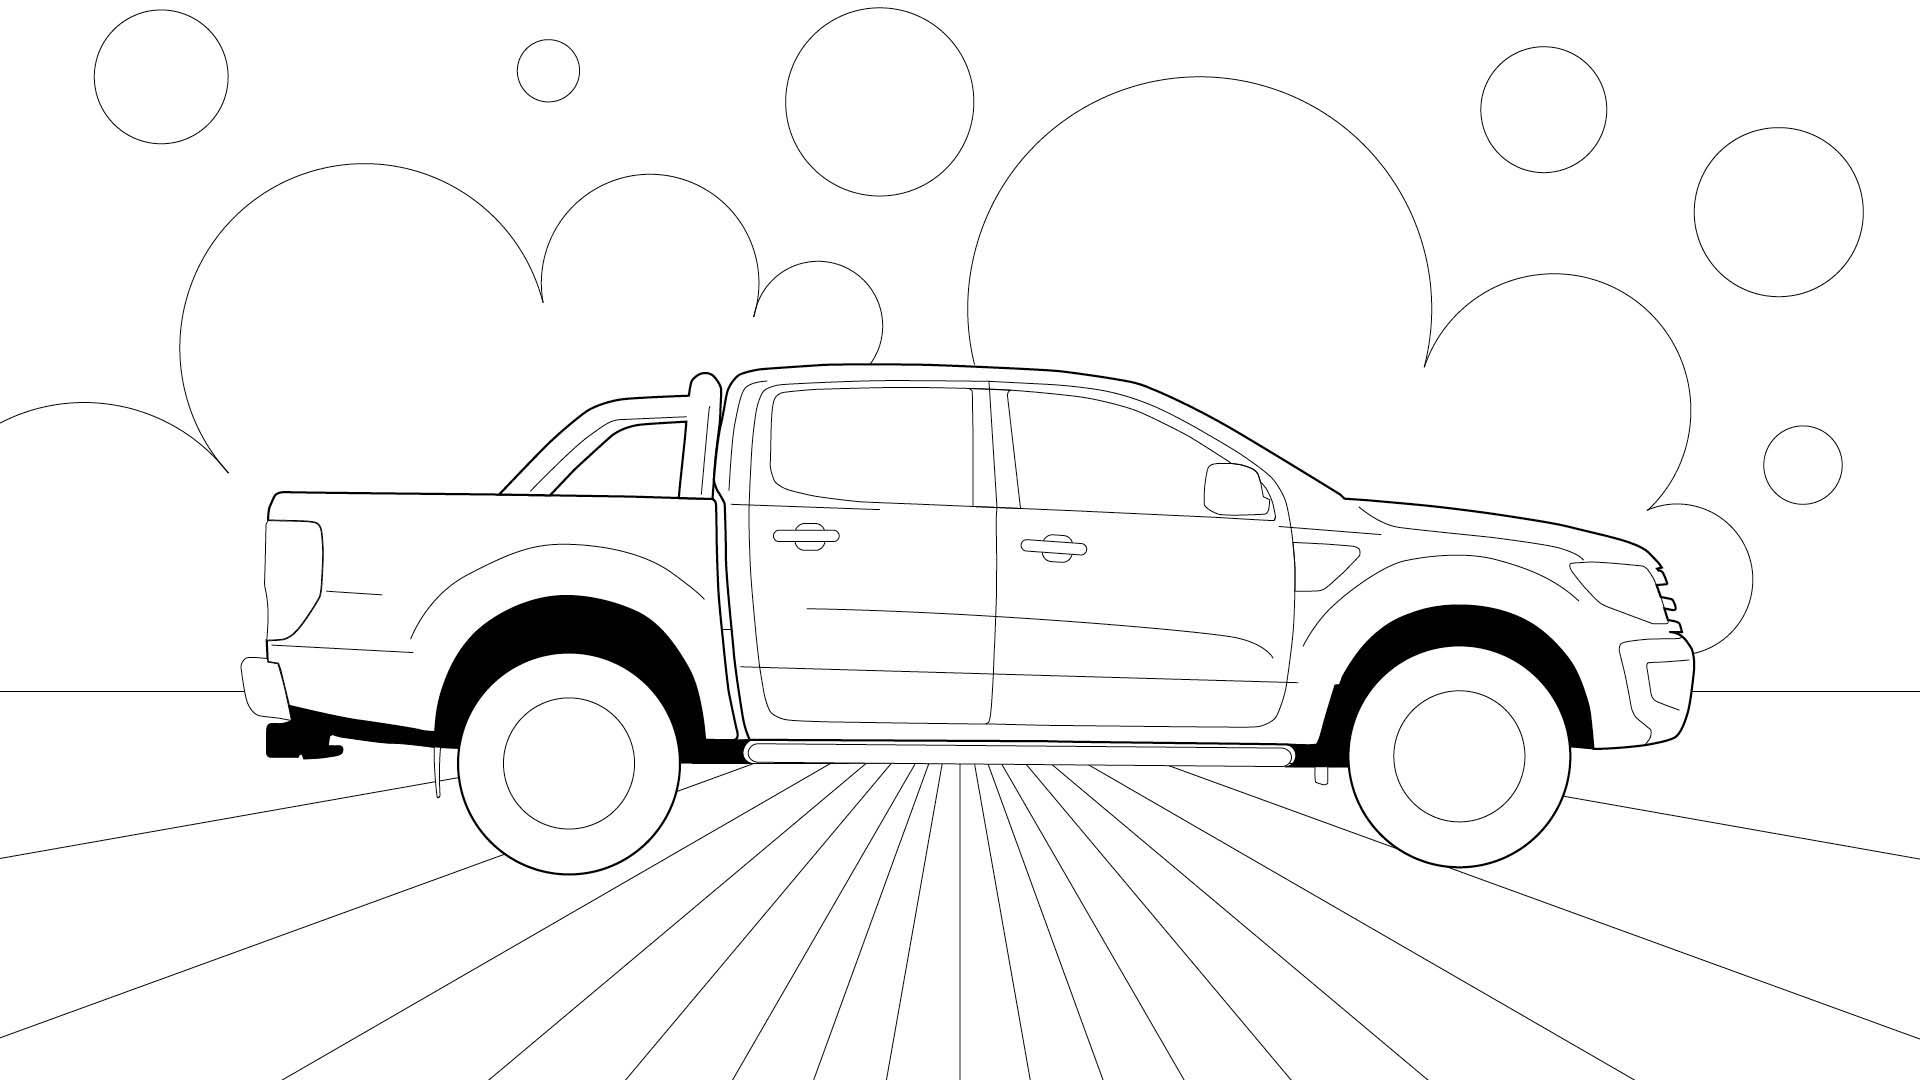 Ford Stay Home Ranger colouring in poster